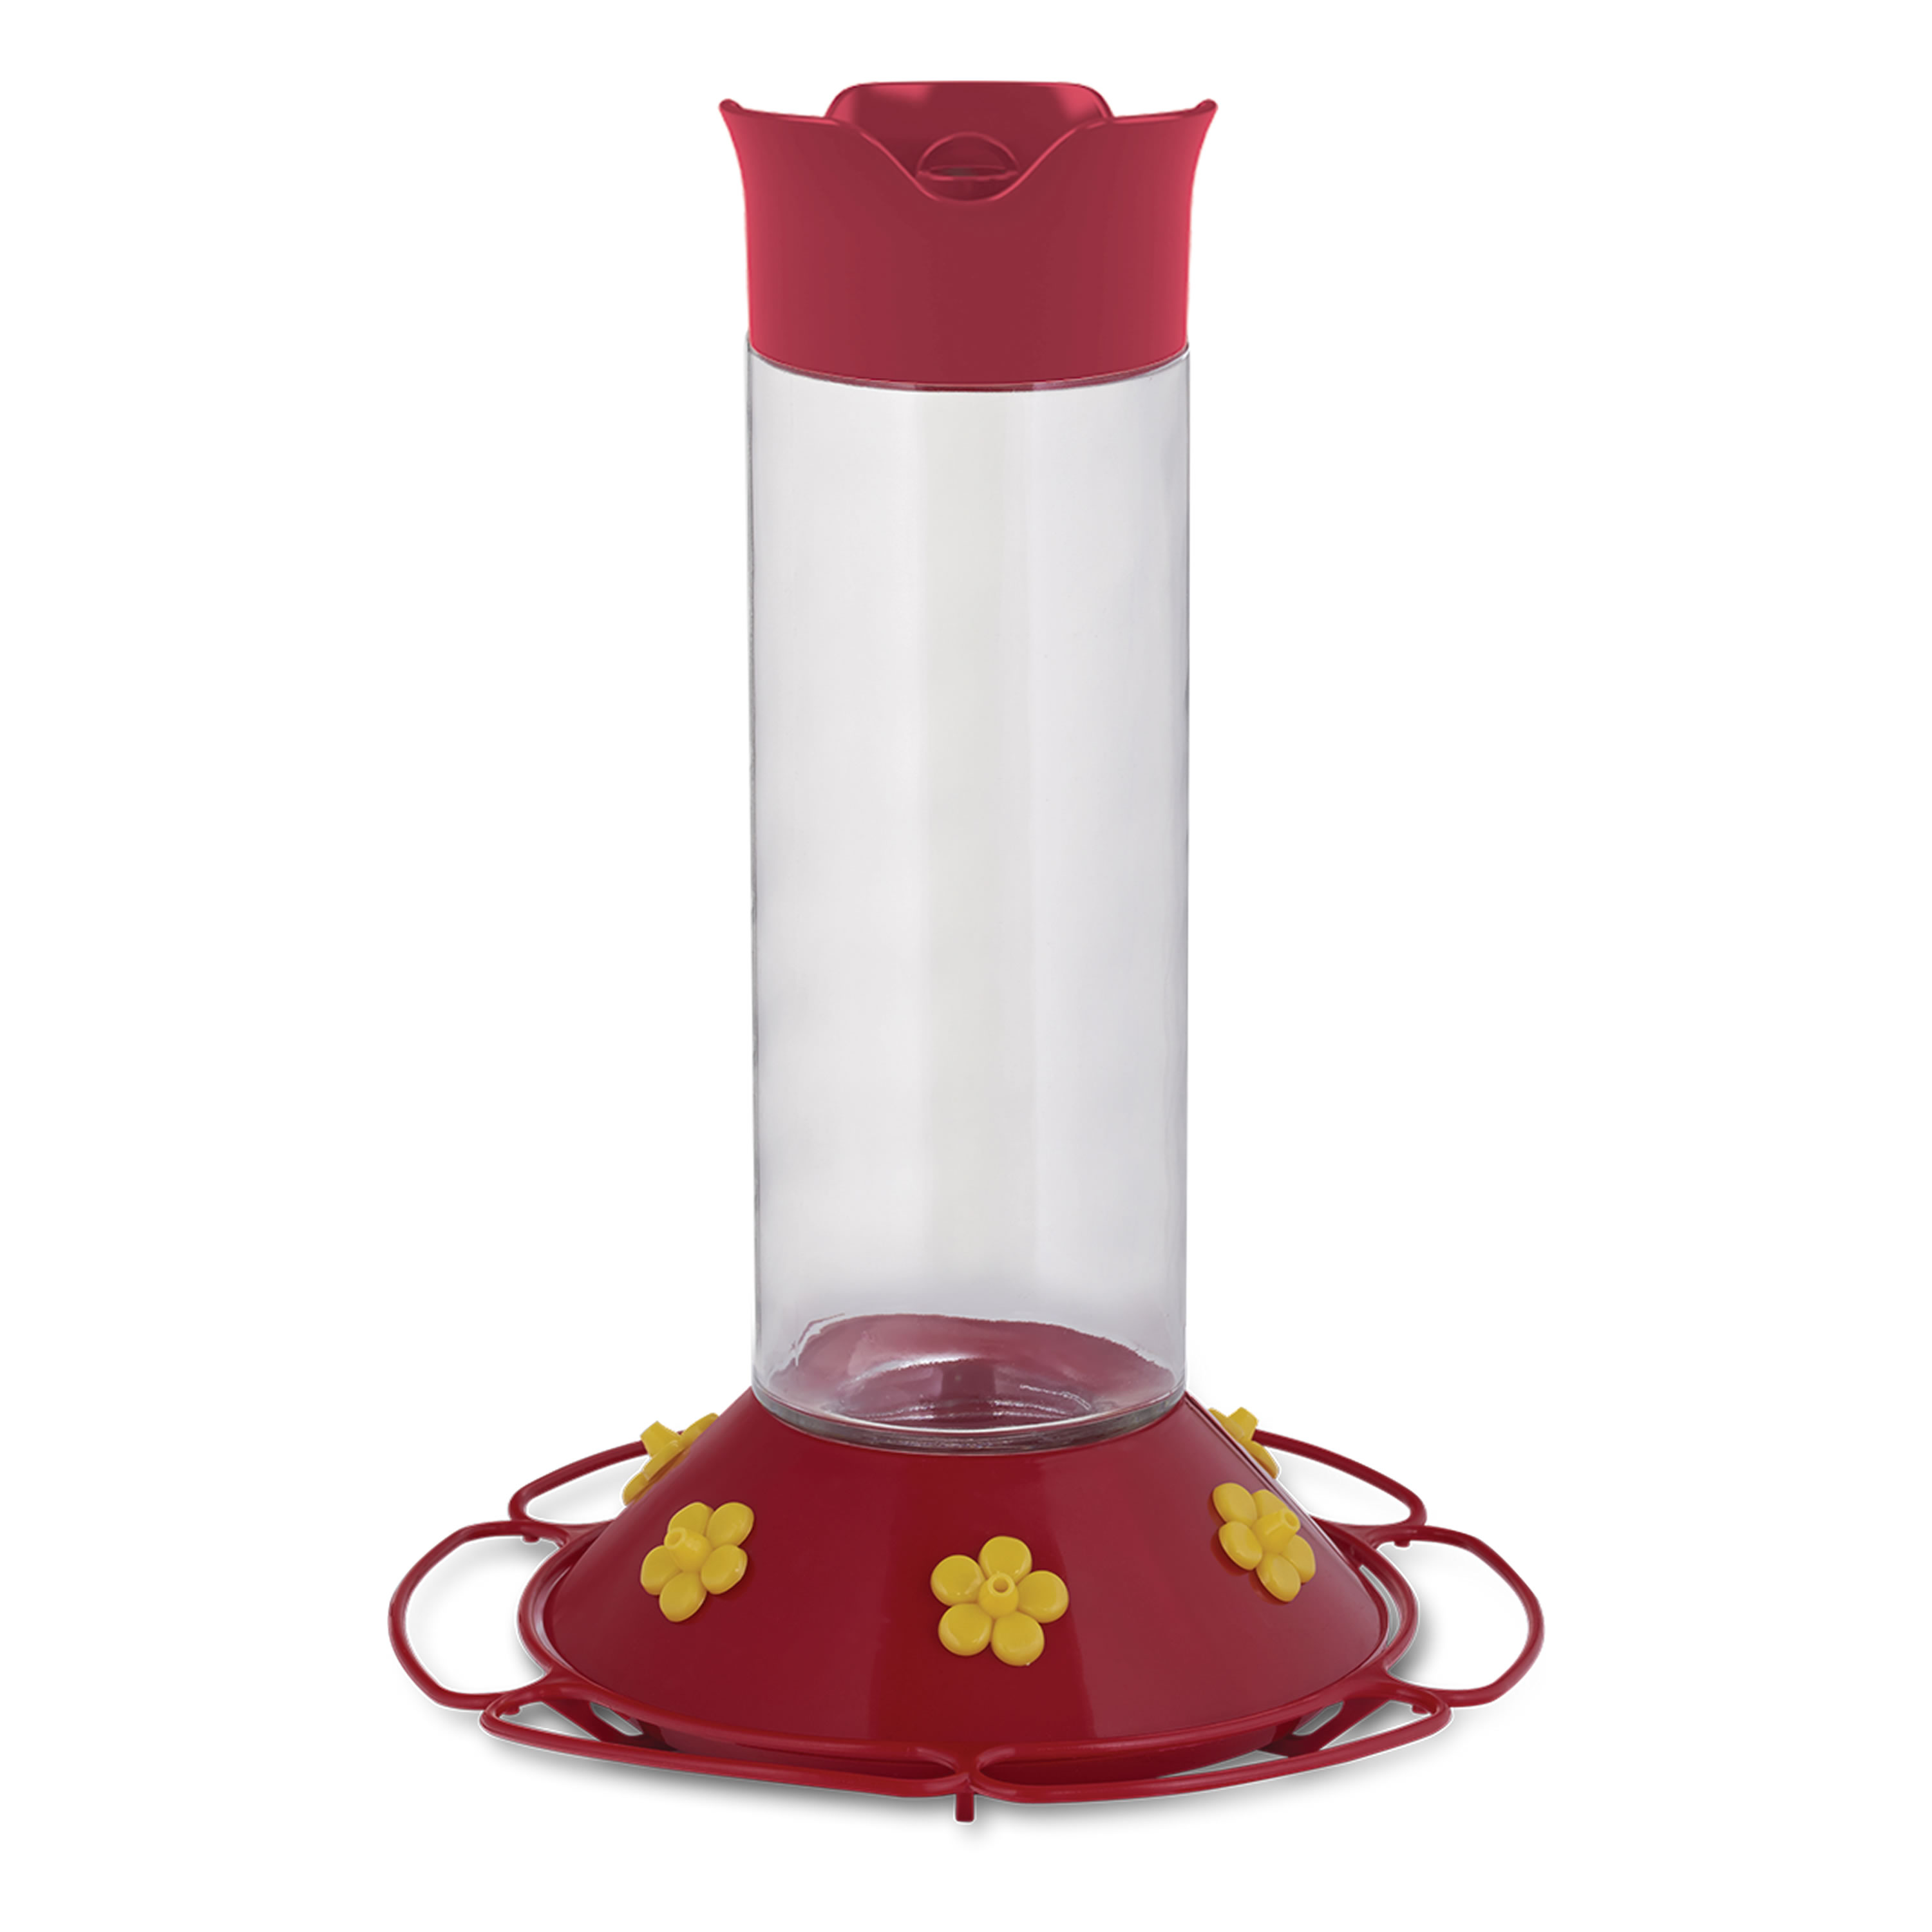 Perky-Pet 30 oz �Our Best� Glass HummingBirdfeeder by woodstream